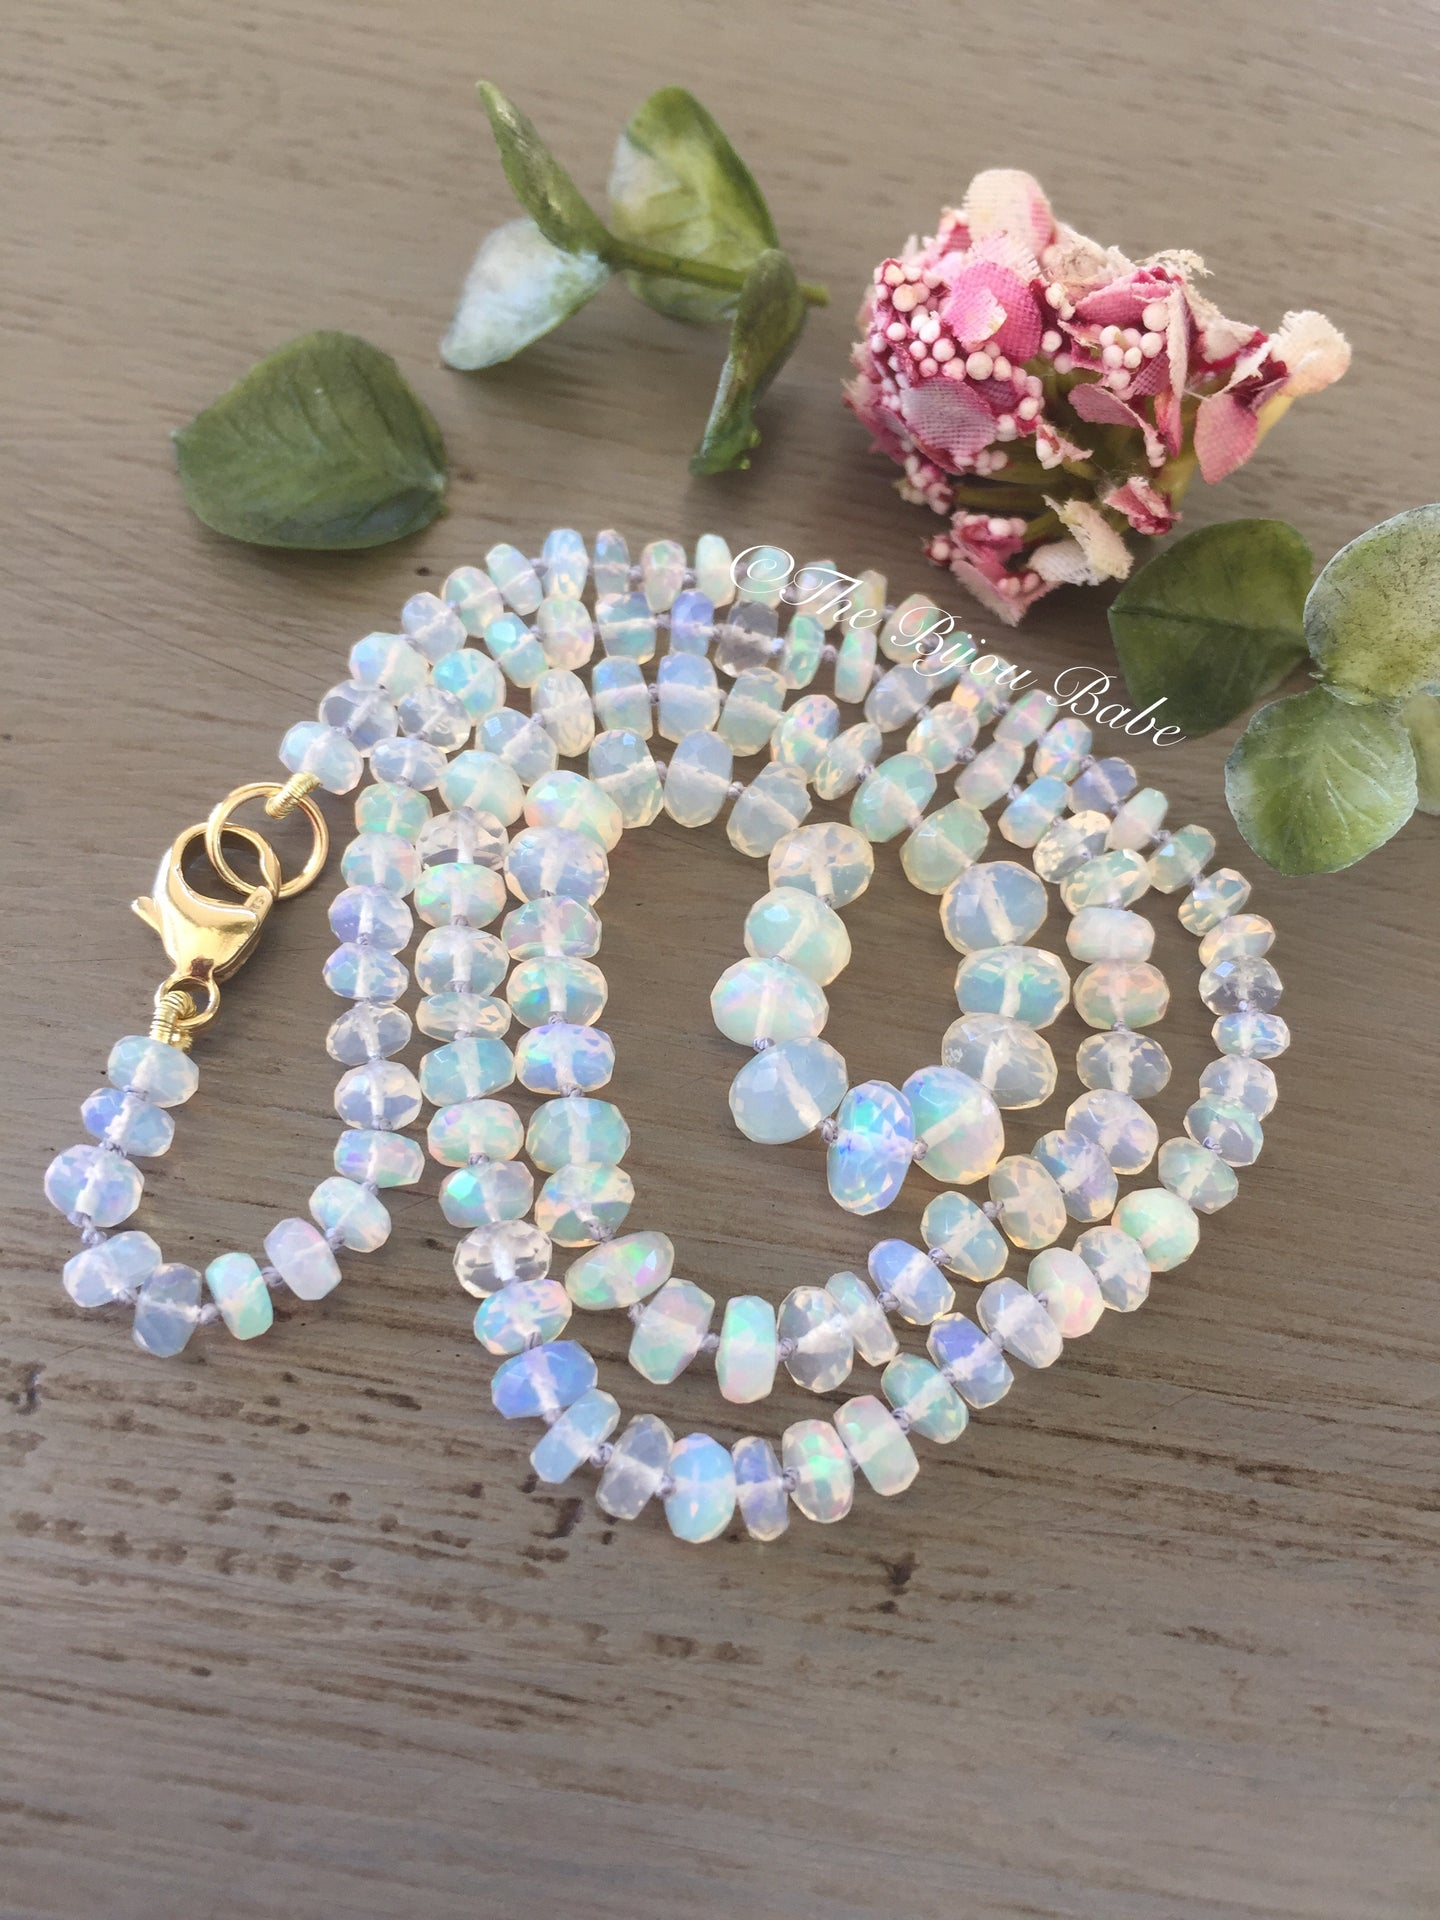 14kt Faceted Ethiopian Opal Necklace